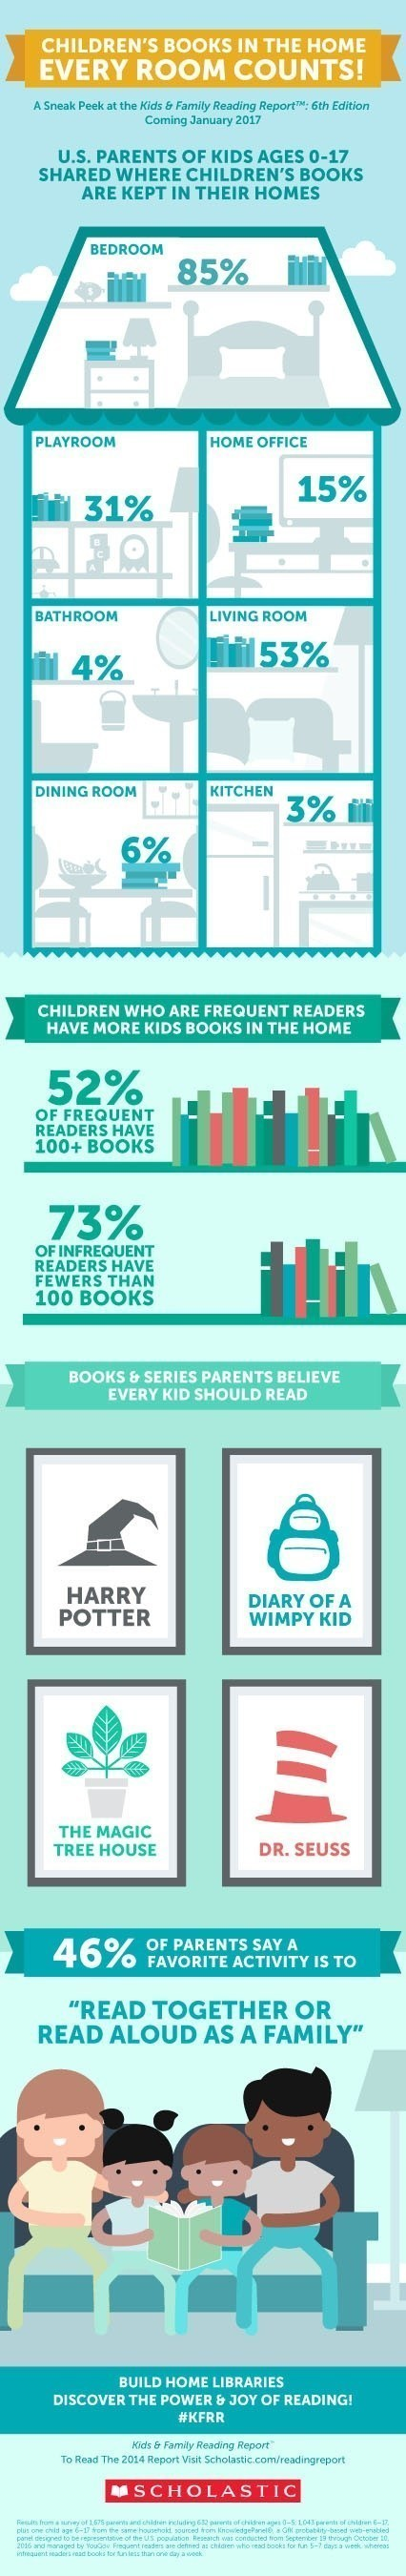 Sneak Peek of the Scholastic Kids & Family Reading Report(TM): 6th Edition (January 2017) reveals key data about the number of books in U.S. homes and where books are most commonly found. For more information, visit: scholastic.com/readingreport.